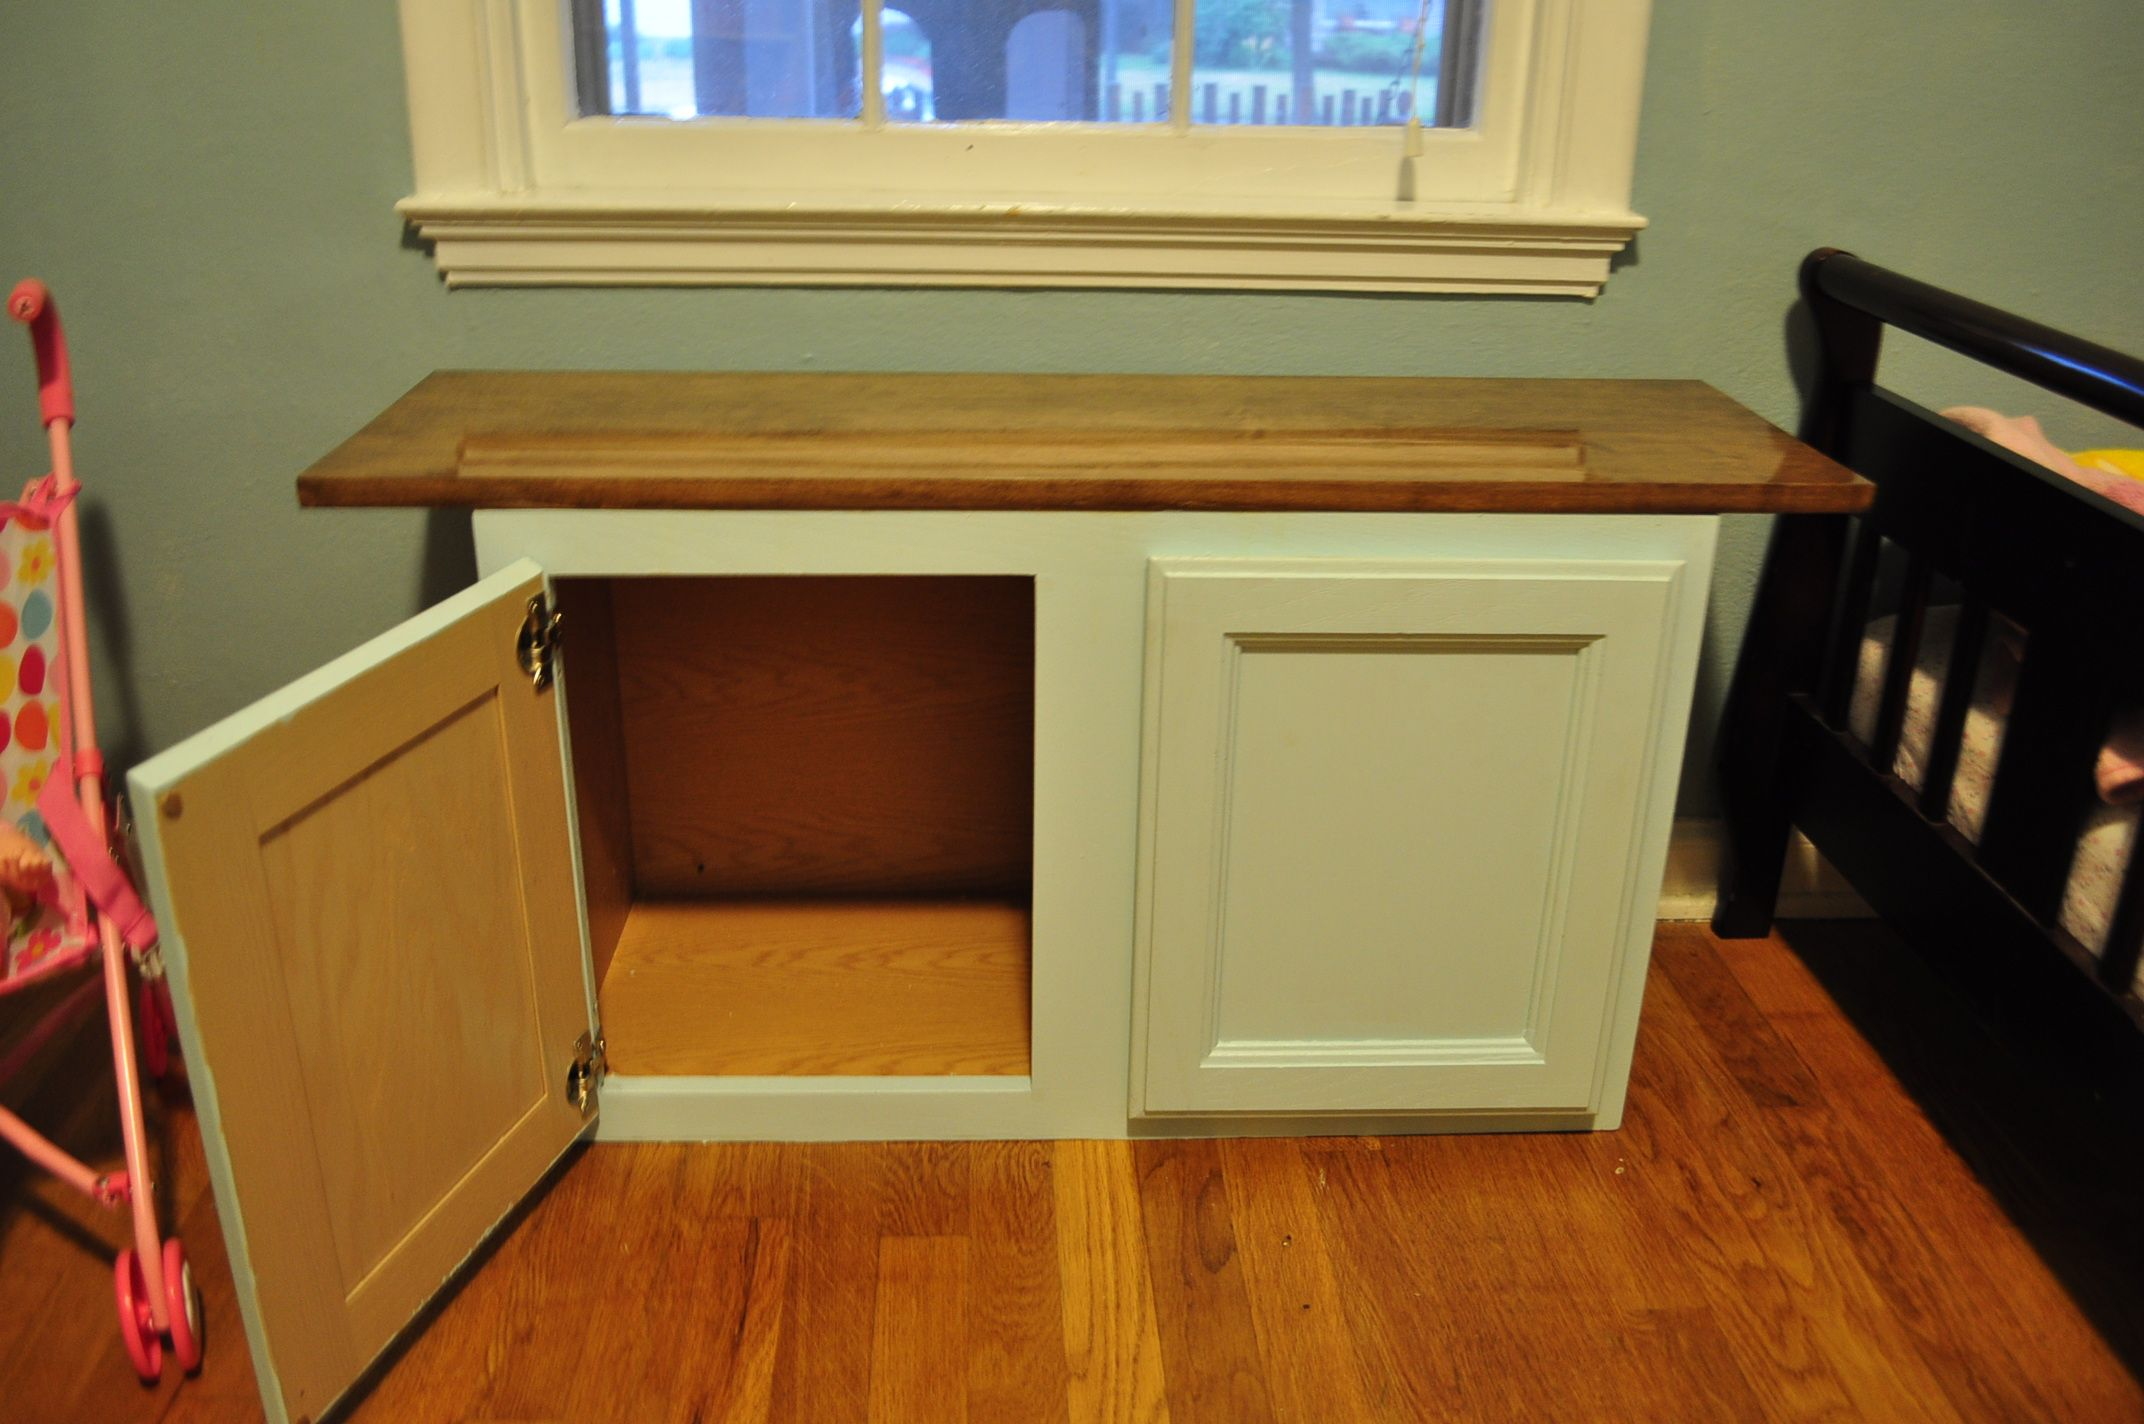 Repurposed Kitchen Cabinet As Toddler Storage Bench Repurposed Kitchen Diy Storage Bench Vintage Kitchen Cabinets